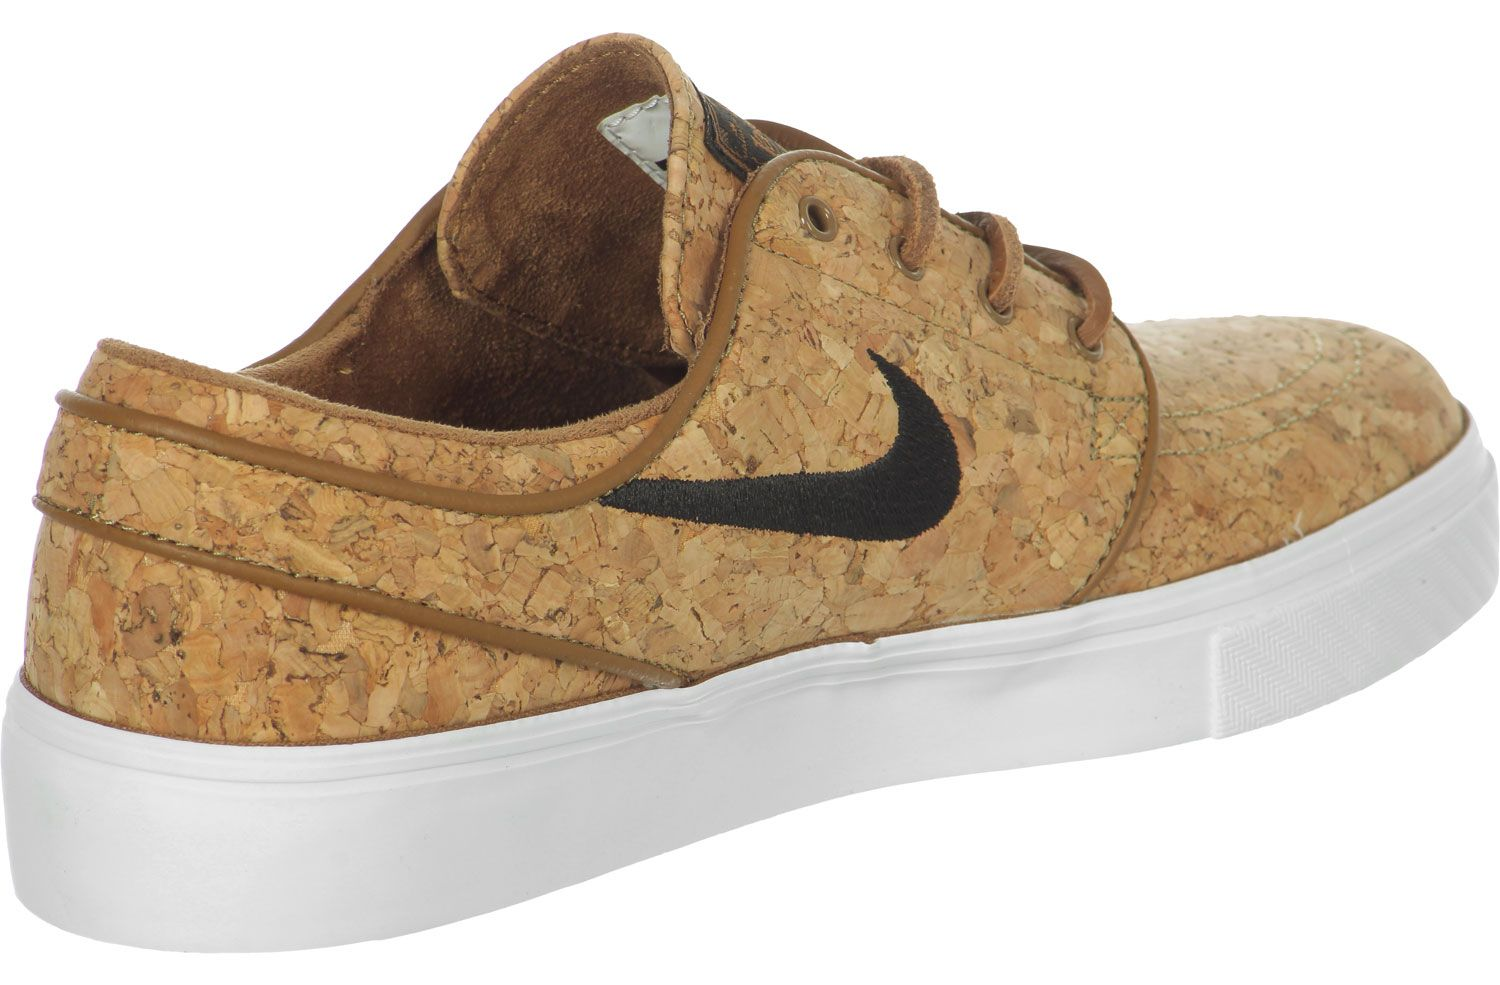 Nike SB Zoom Stefan Janoski Elite Sneaker ale brown black